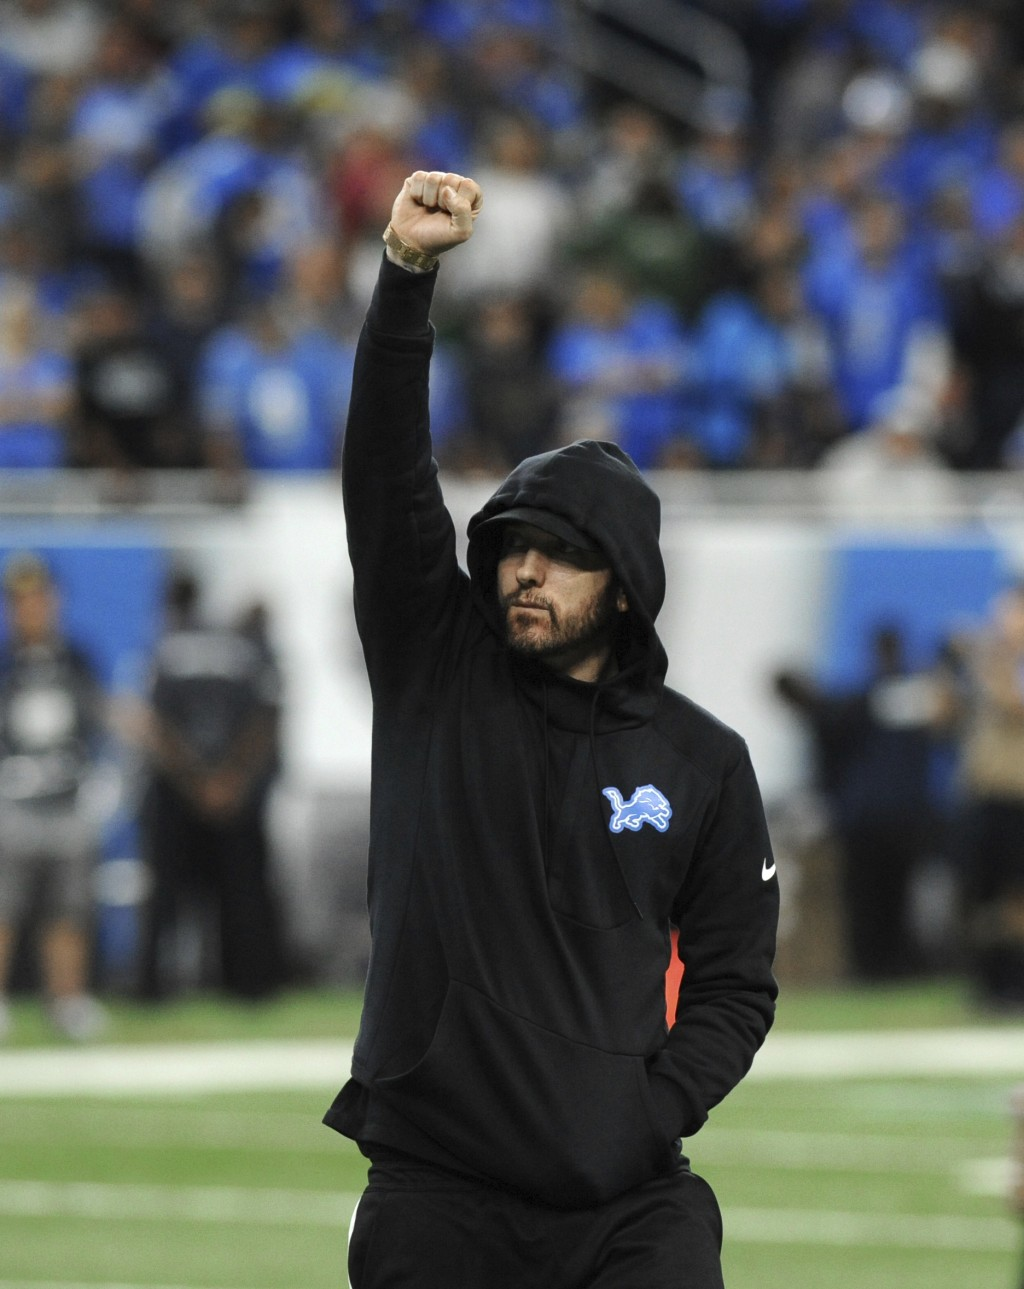 Eminem acknowledges the crowd at an NFL football game between the Detroit Lions and New York Jets in Detroit, Monday, Sept. 10, 2018. (AP Photo/Jose J